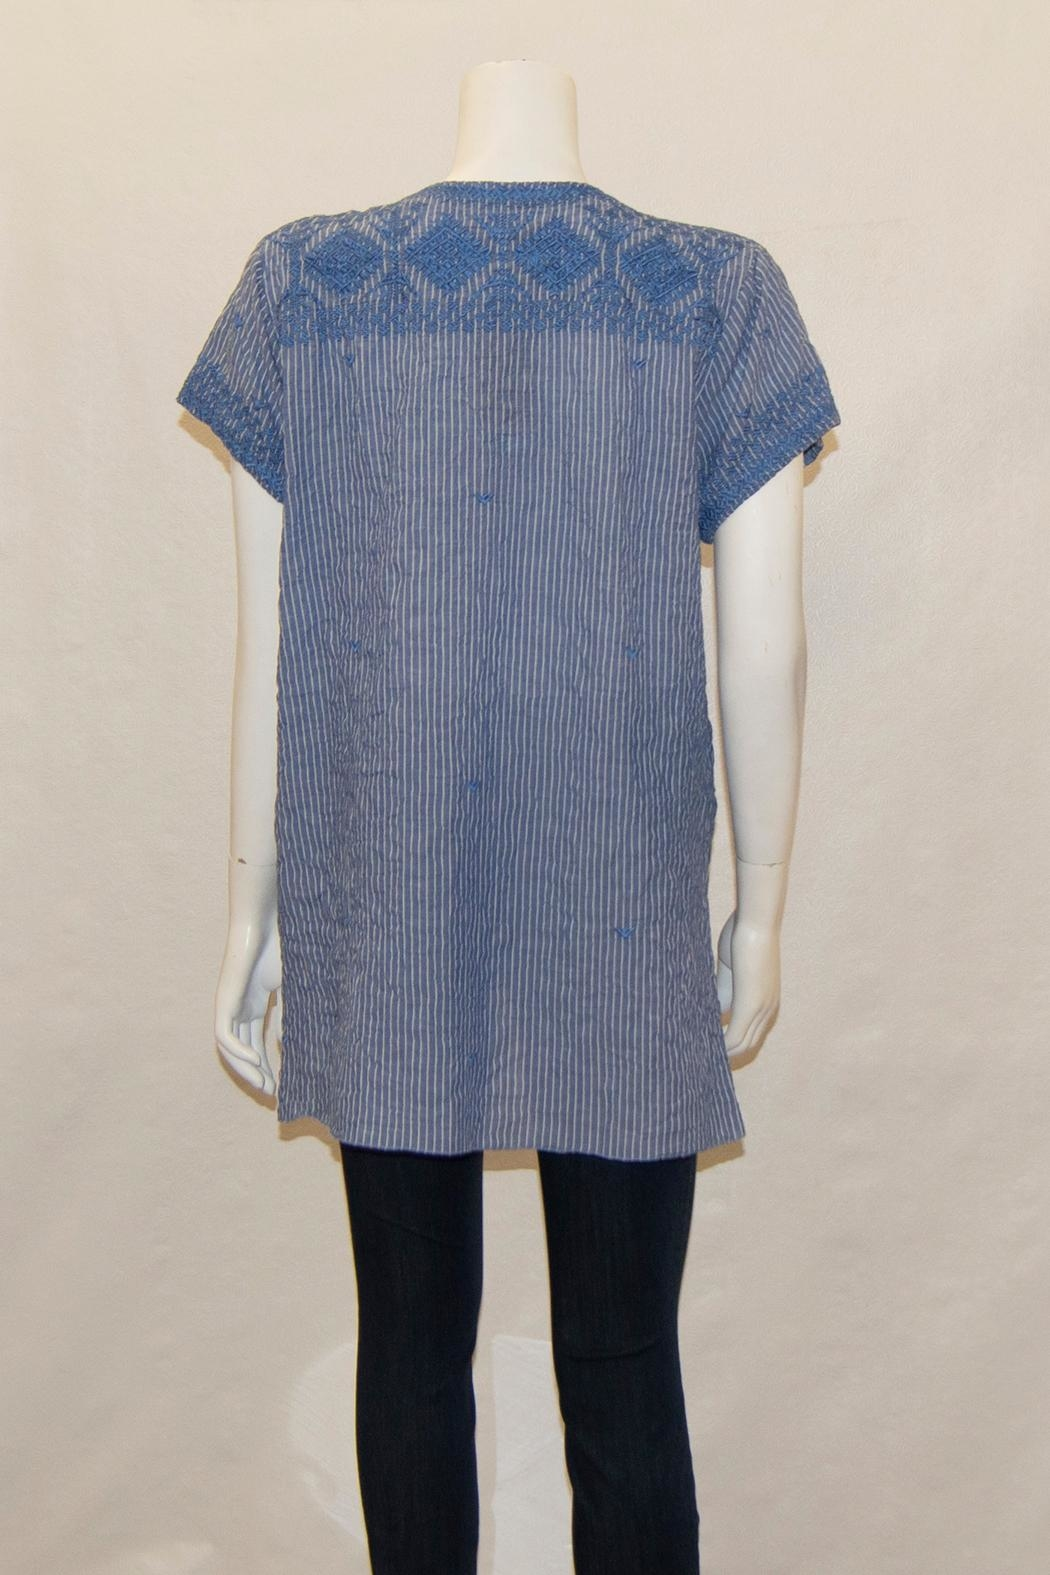 3J Workshop by Johnny Was Azure Drape Top - Front Full Image